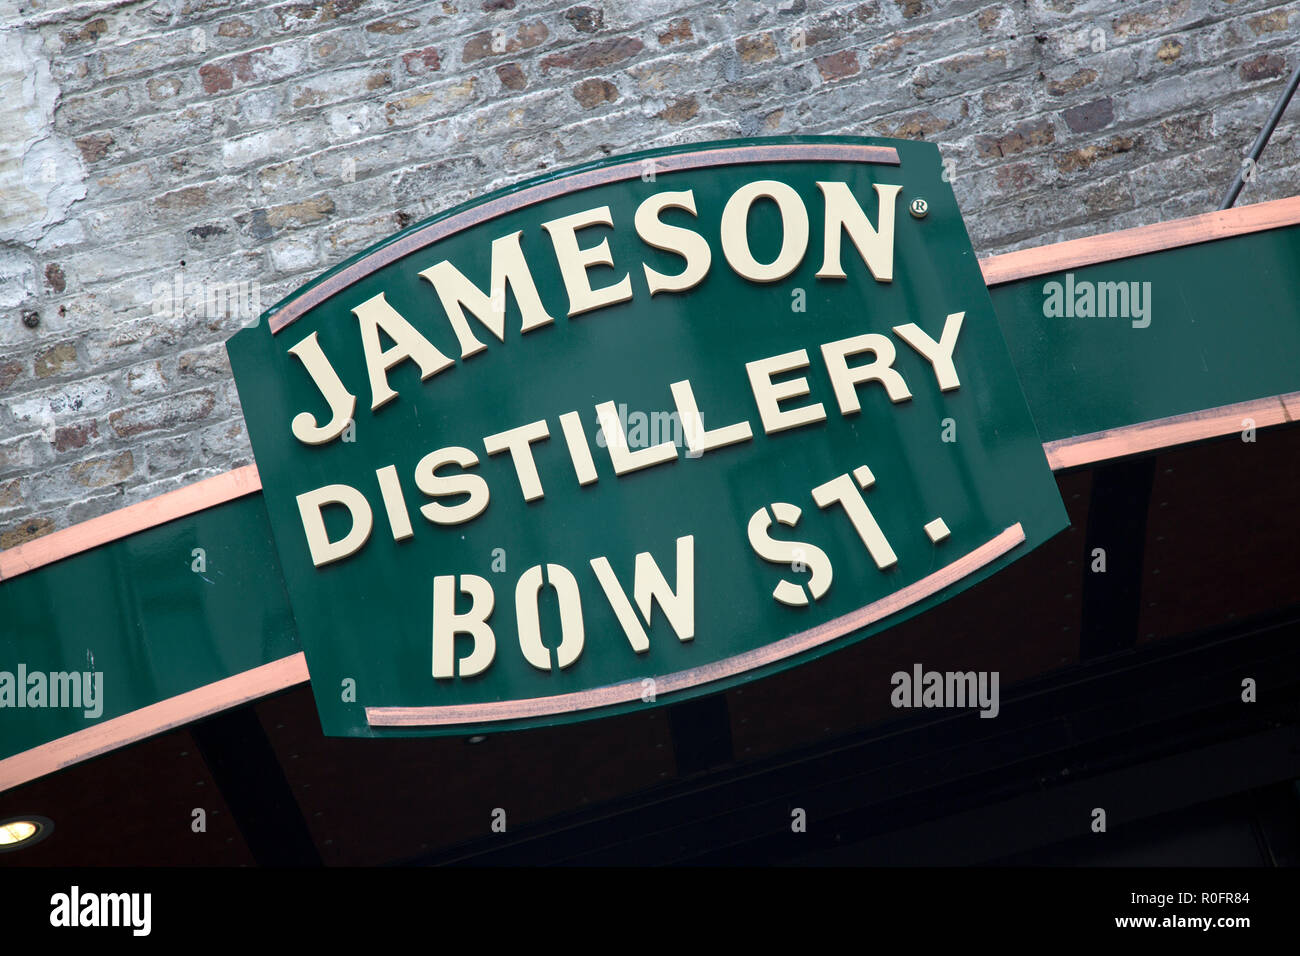 Jameson Irish Whiskey Distillery Bow Street Dublin Ireland